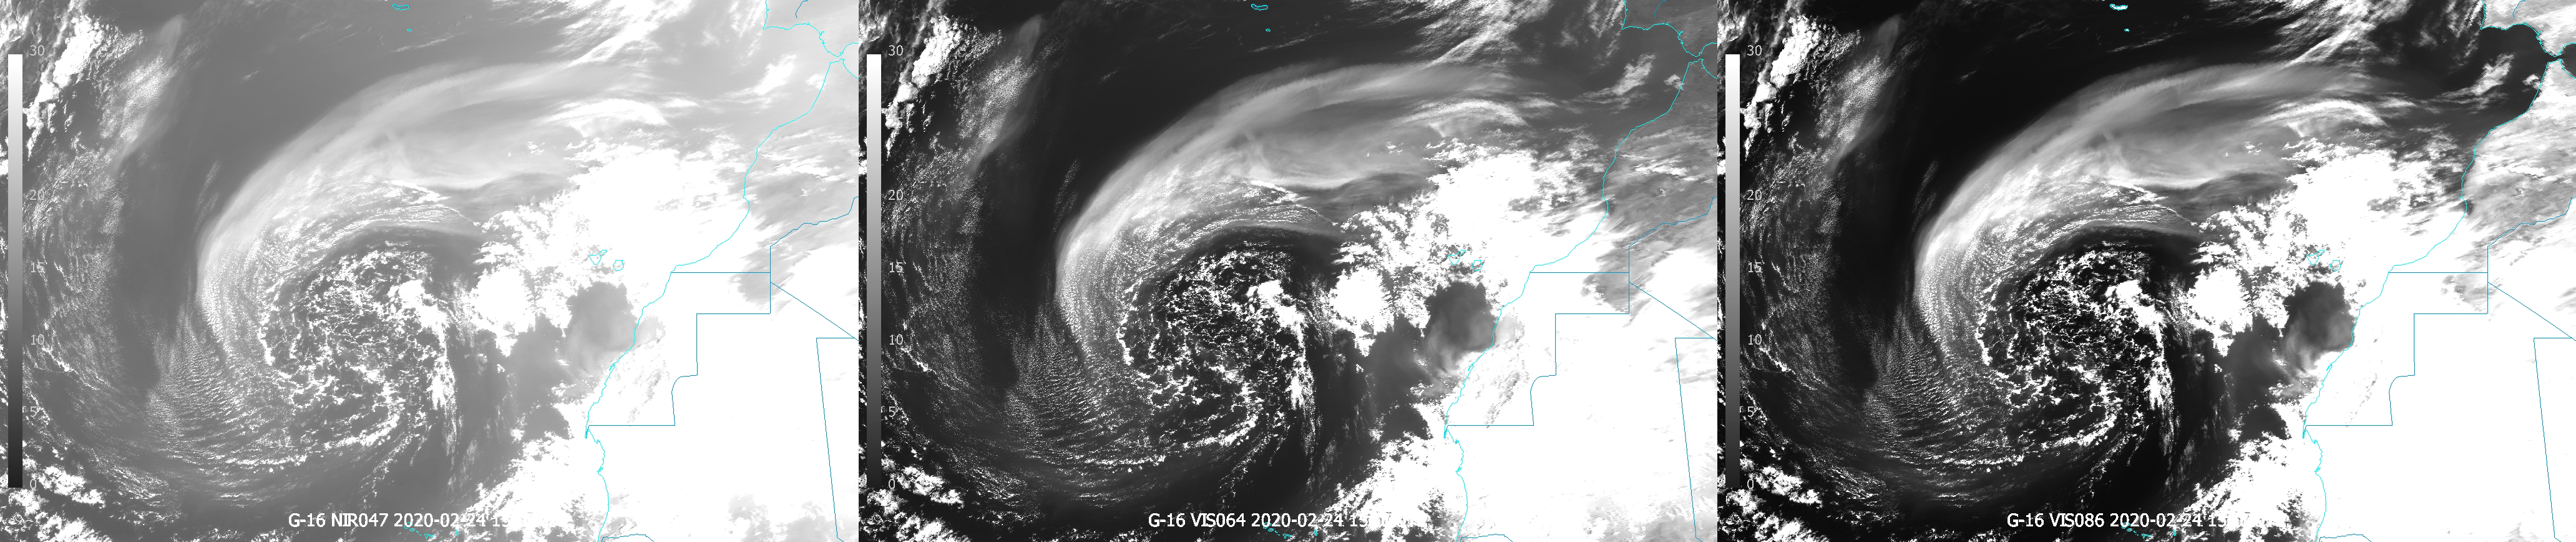 GOES-16 VIS0.47, VIS0.64 and VIS0.86 channels